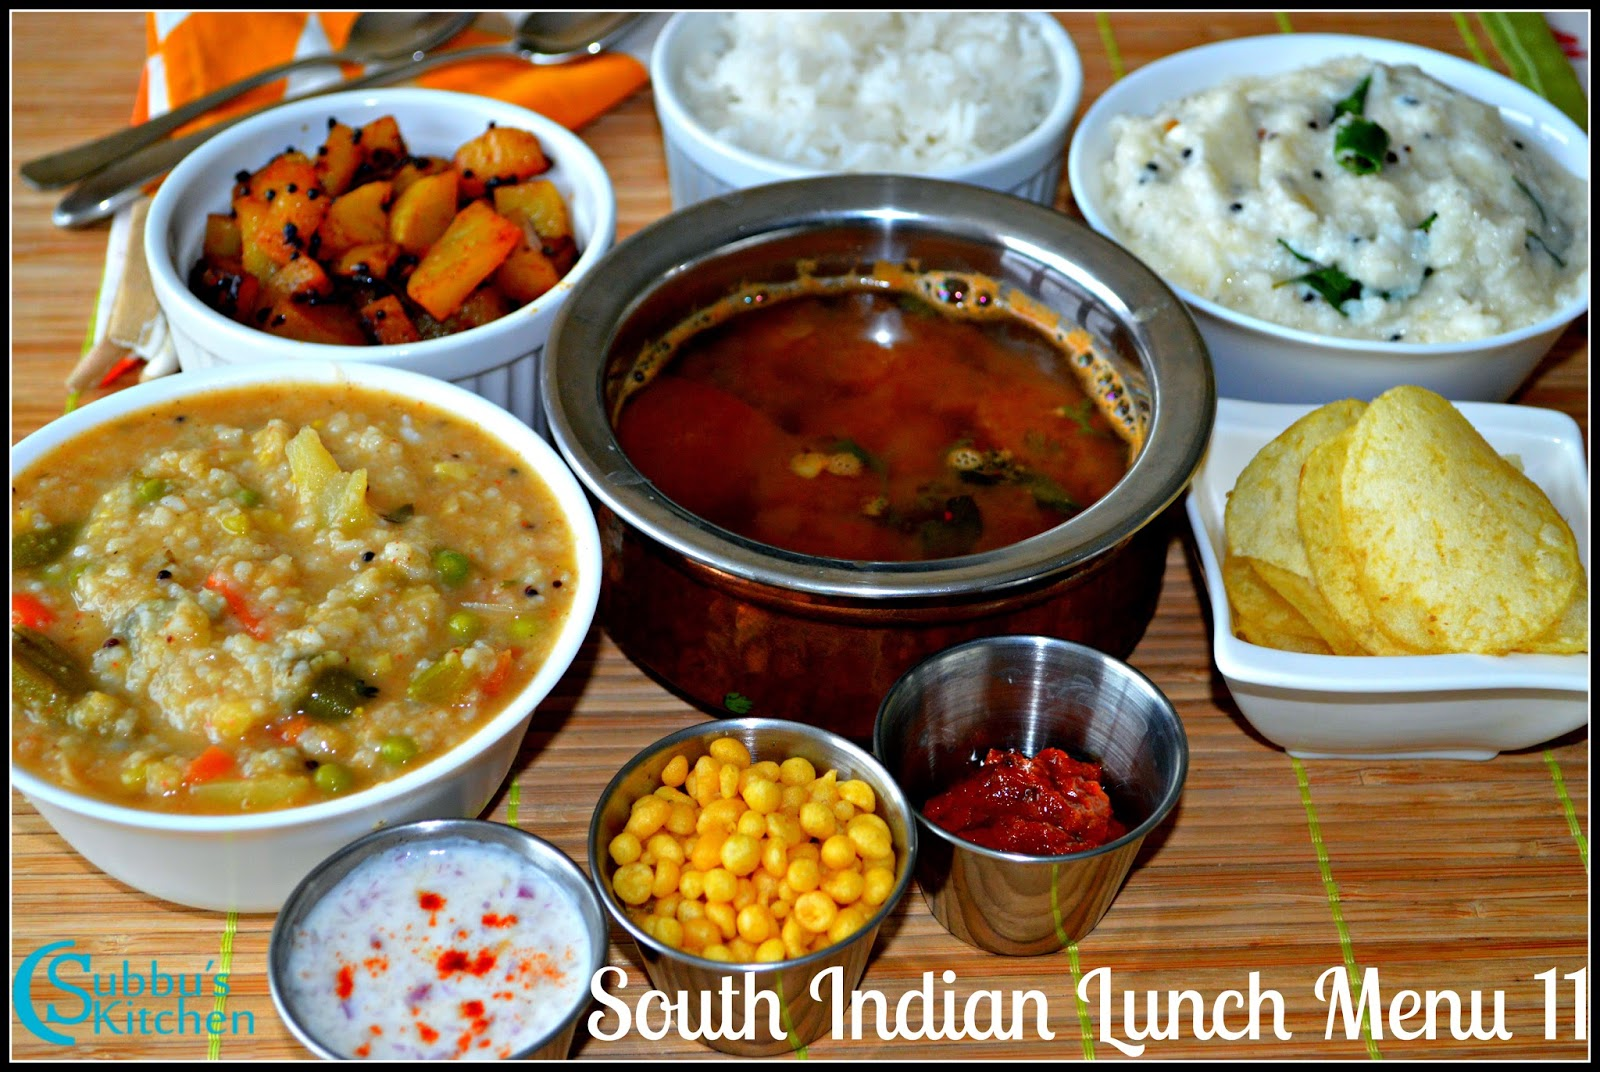 South indian lunch menu 12 bisibelabath kalyana rasam for Indian potato recipes for lunch